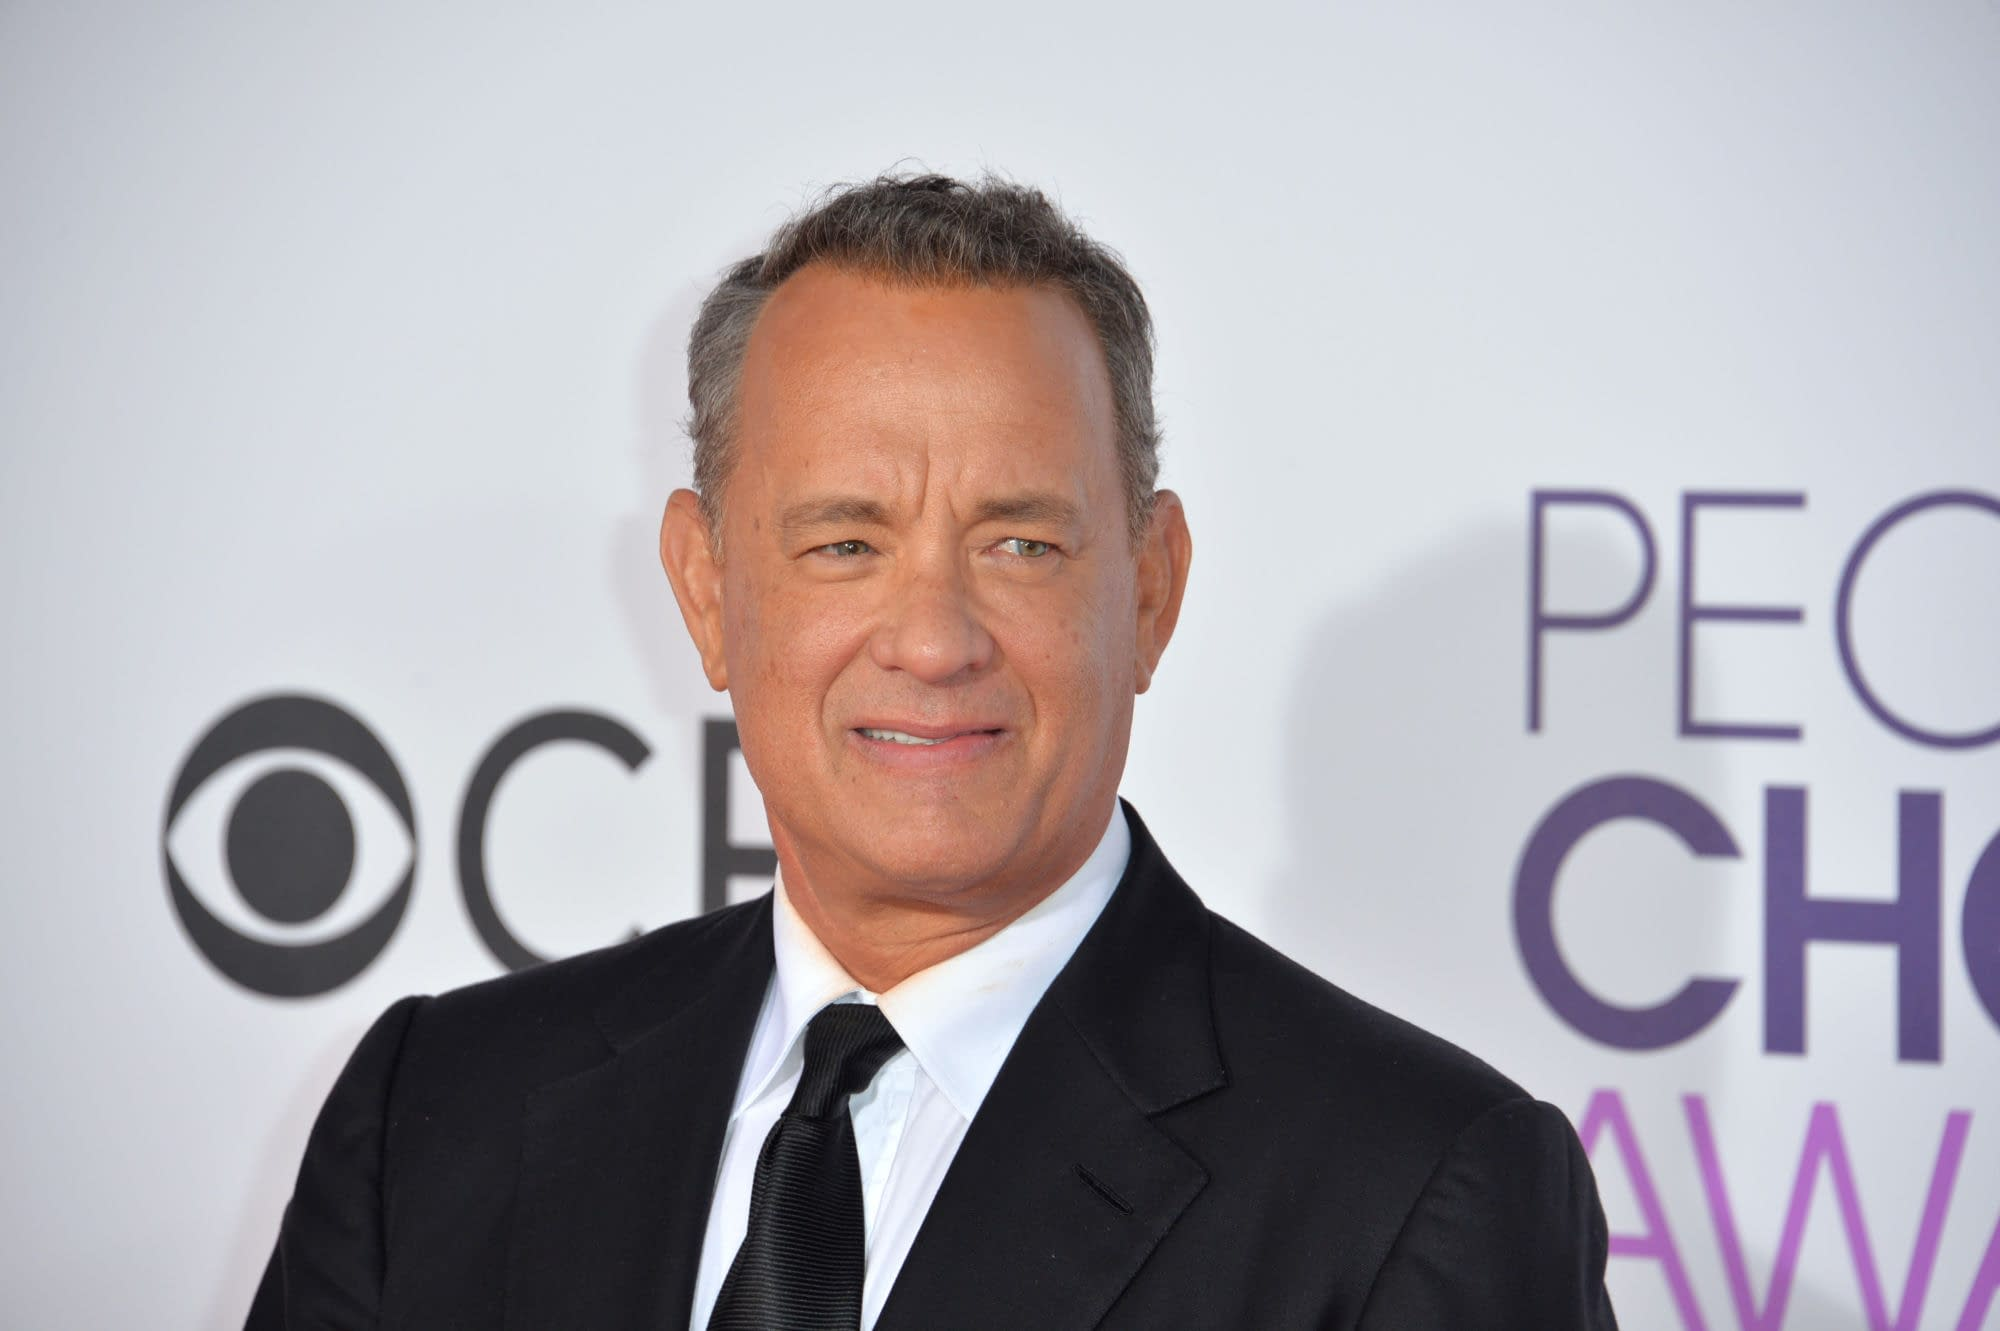 Tom Hanks at the 2017 People's Choice Awards at The Microsoft Theatre, L.A. Live, Los Angeles. Editorial credit: Featureflash Photo Agency / Shutterstock.com